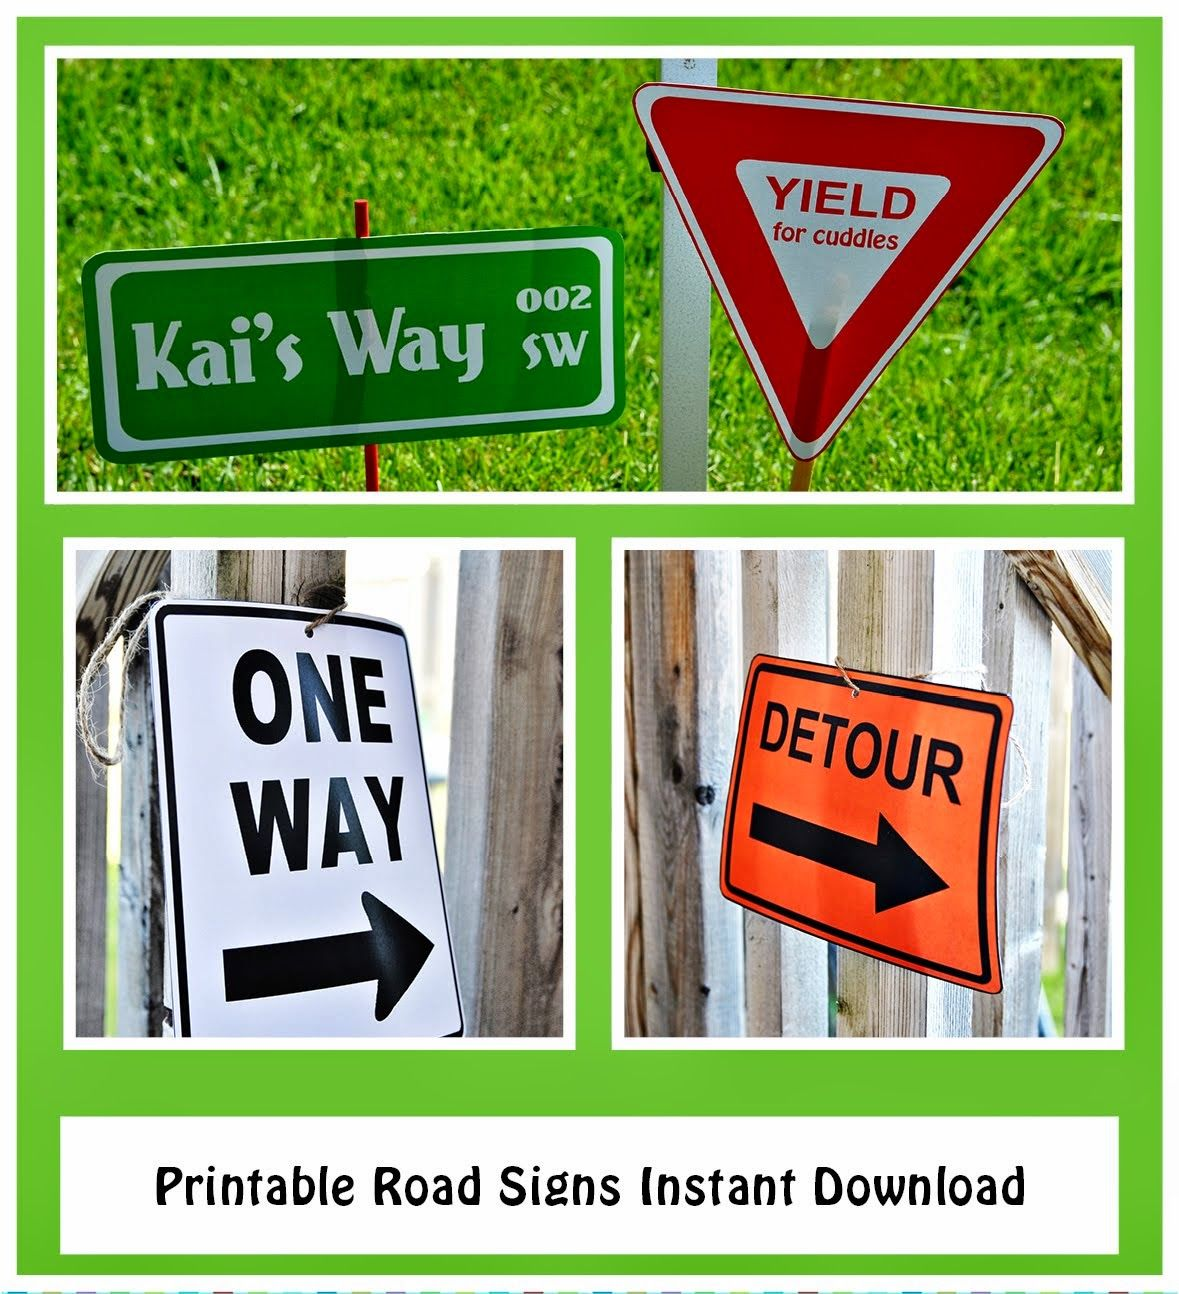 Printable Road Signs Street Sign One Way Sign Detour